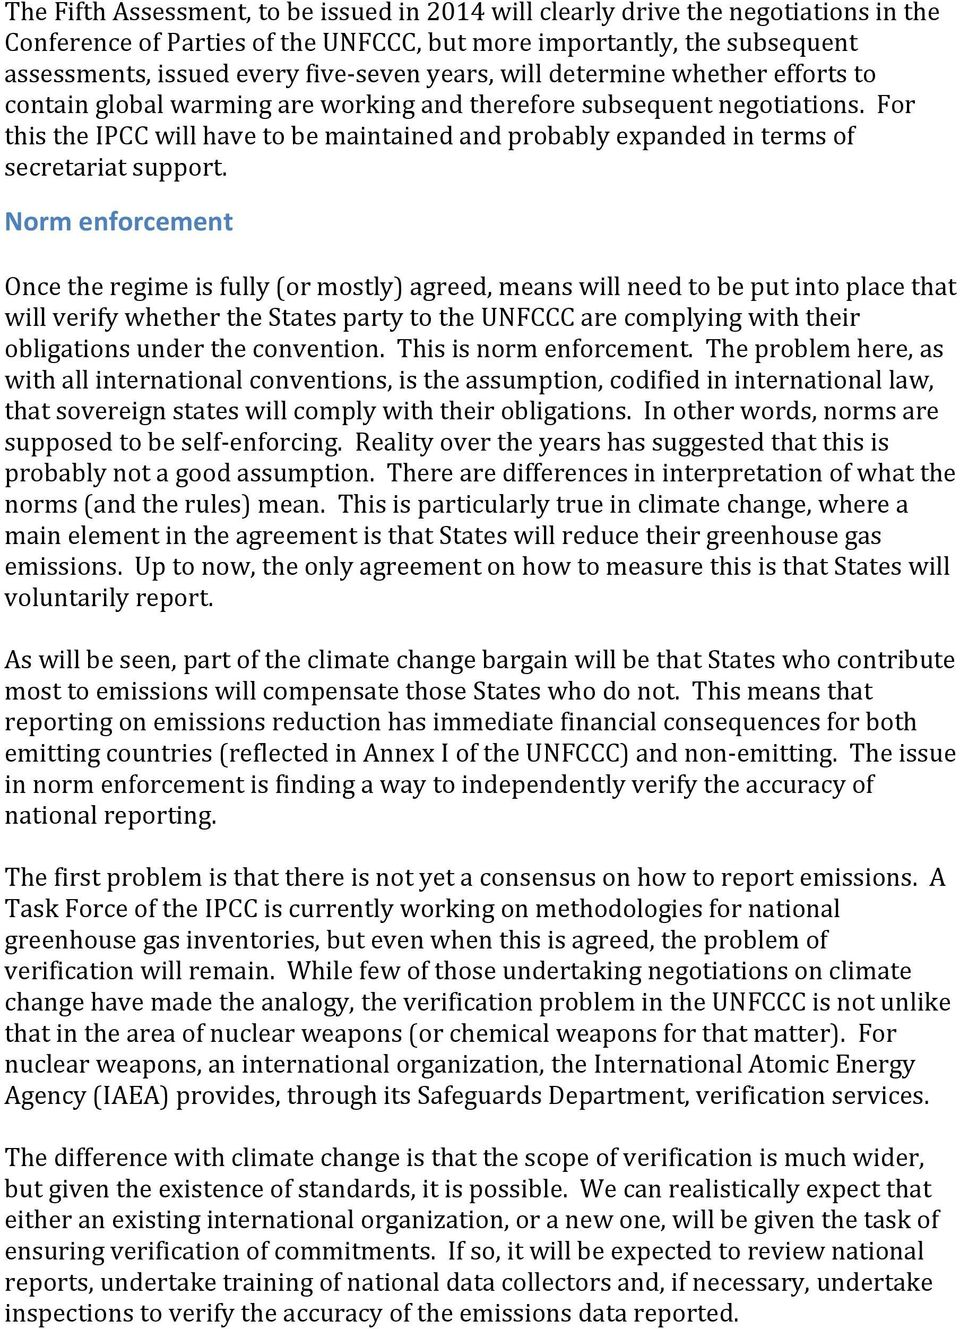 For this the IPCC will have to be maintained and probably expanded in terms of secretariat support.